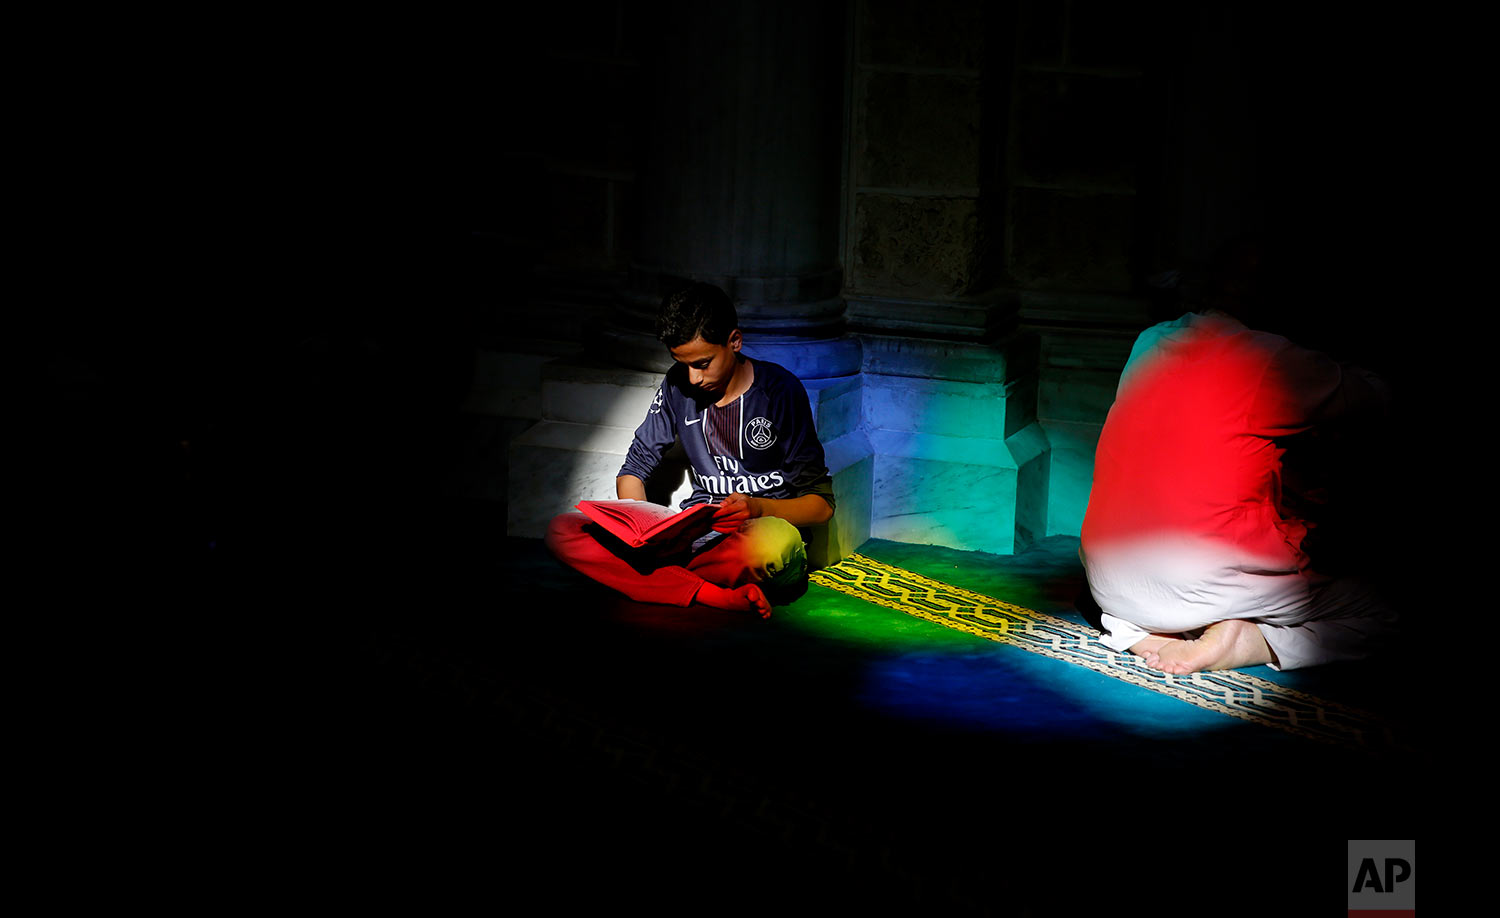 A Palestinian man reads verses of the Quran, Islam's holy book, during the month of Ramadan at Al Emari mosque in Gaza City, Monday, May 29, 2017. Muslims across the world are observing the holy fasting month of Ramadan, where they refrain from eating, drinking and smoking from dawn to dusk. (AP Photo/Hatem Moussa)